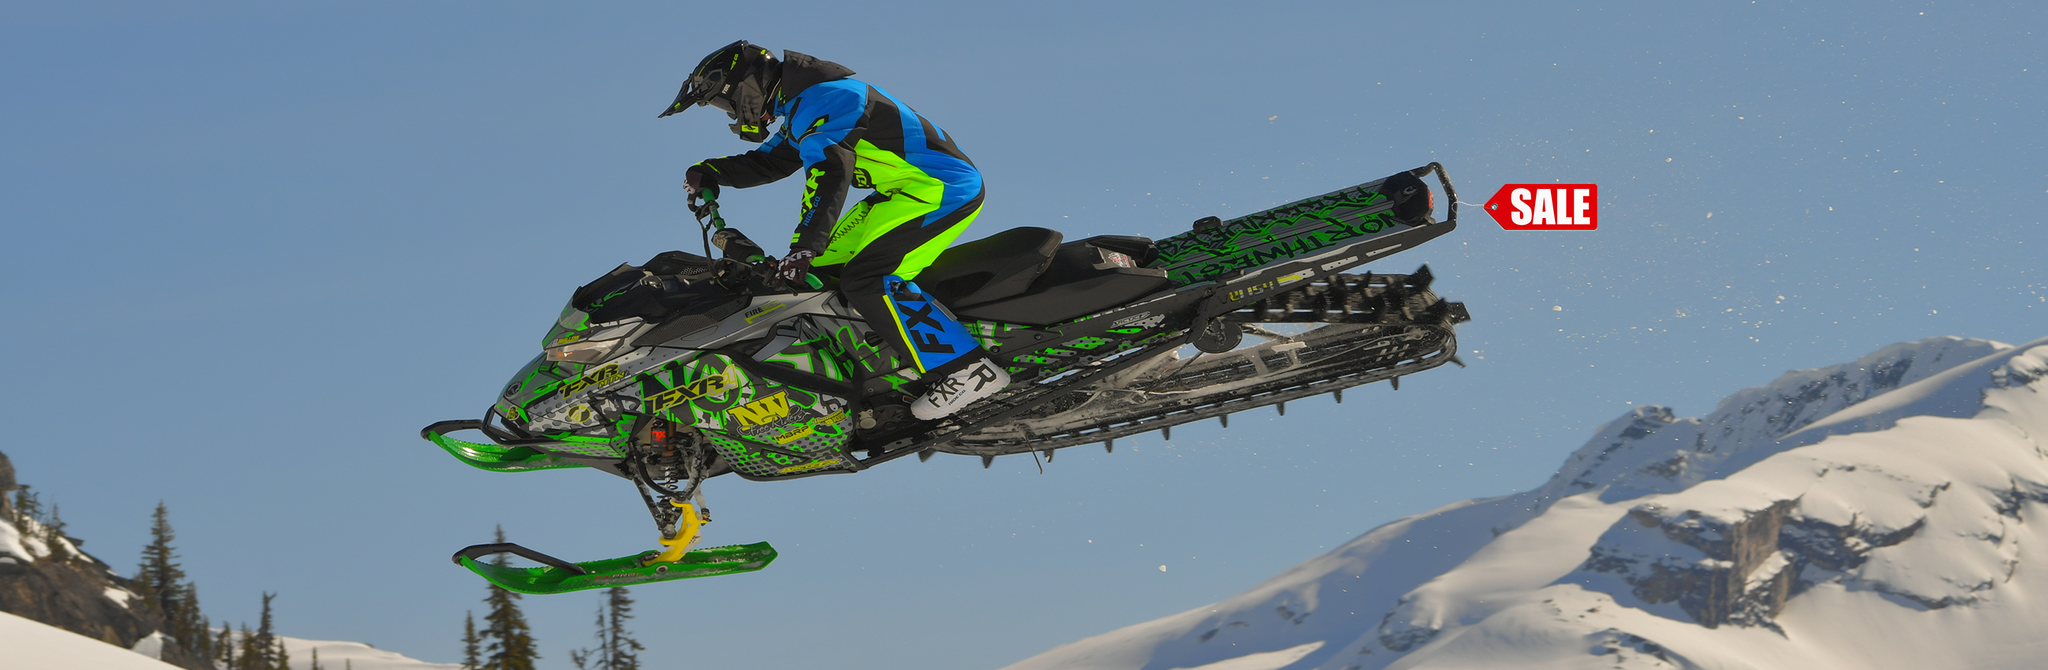 fxr snowmobile gear, helmets, jackets, boots goggles, huge sale